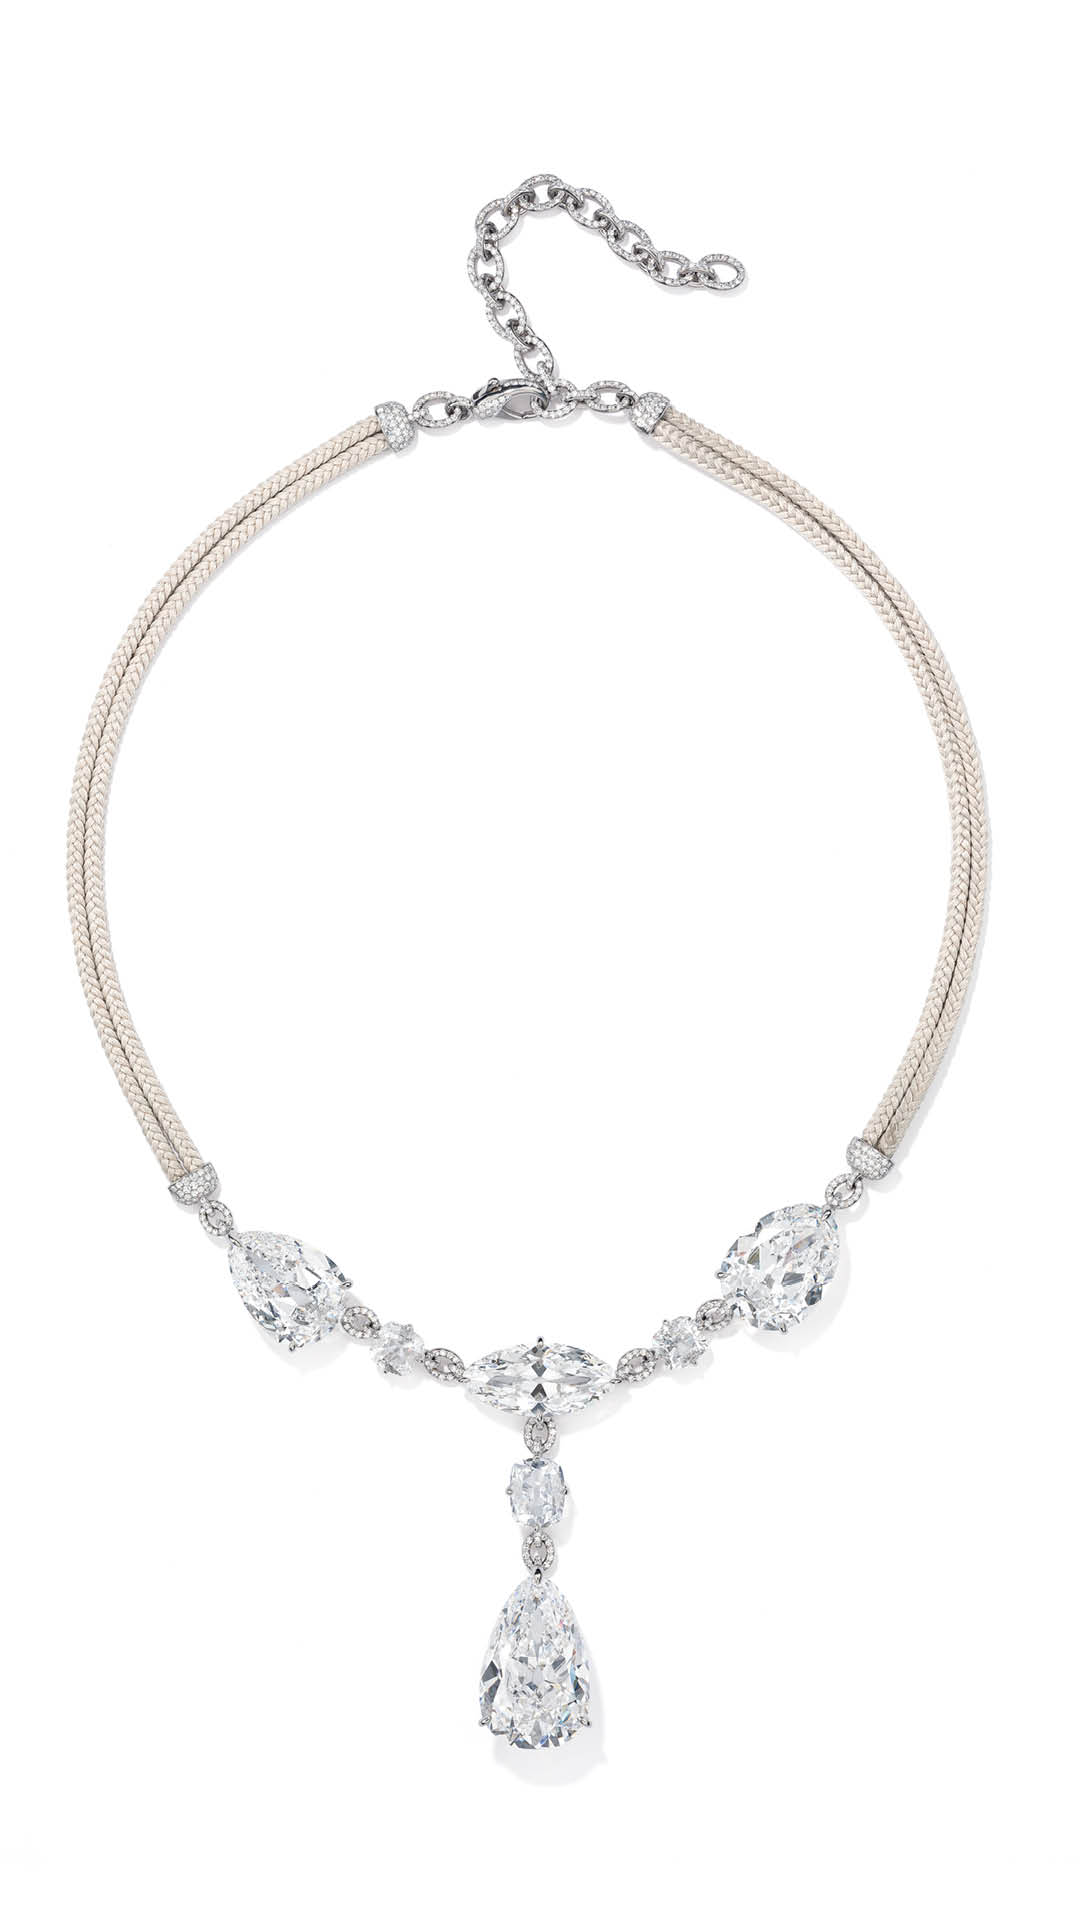 G-International-Cushion-Cut-Diamond-Necklace